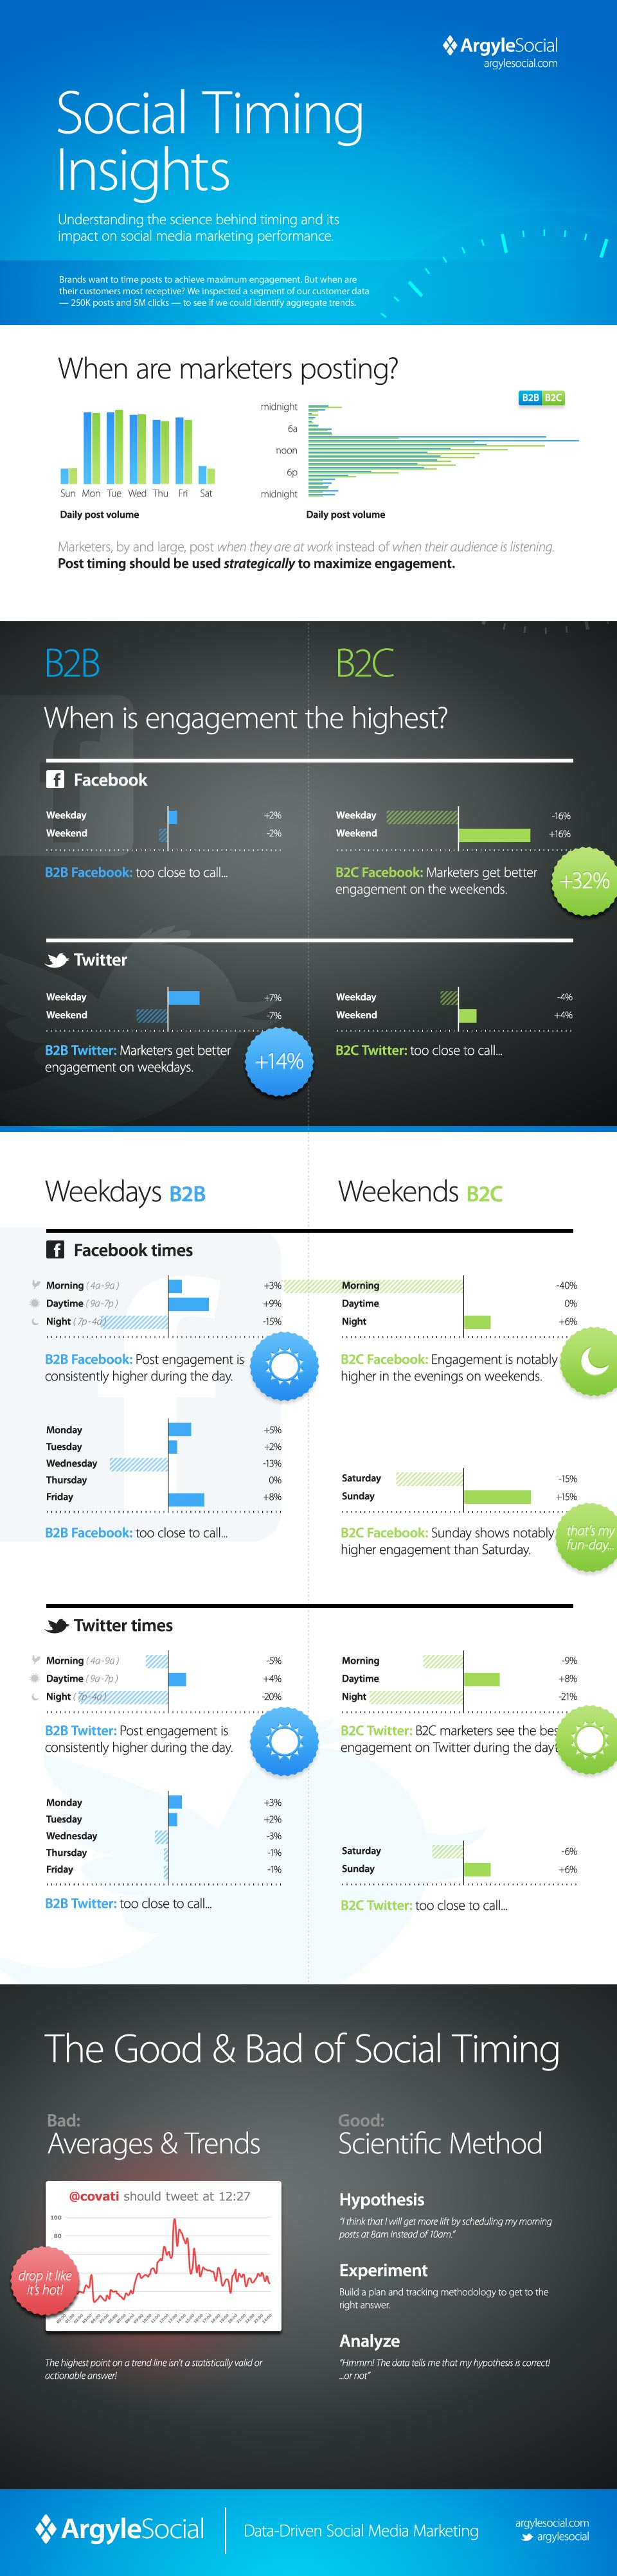 Social Timing Insights